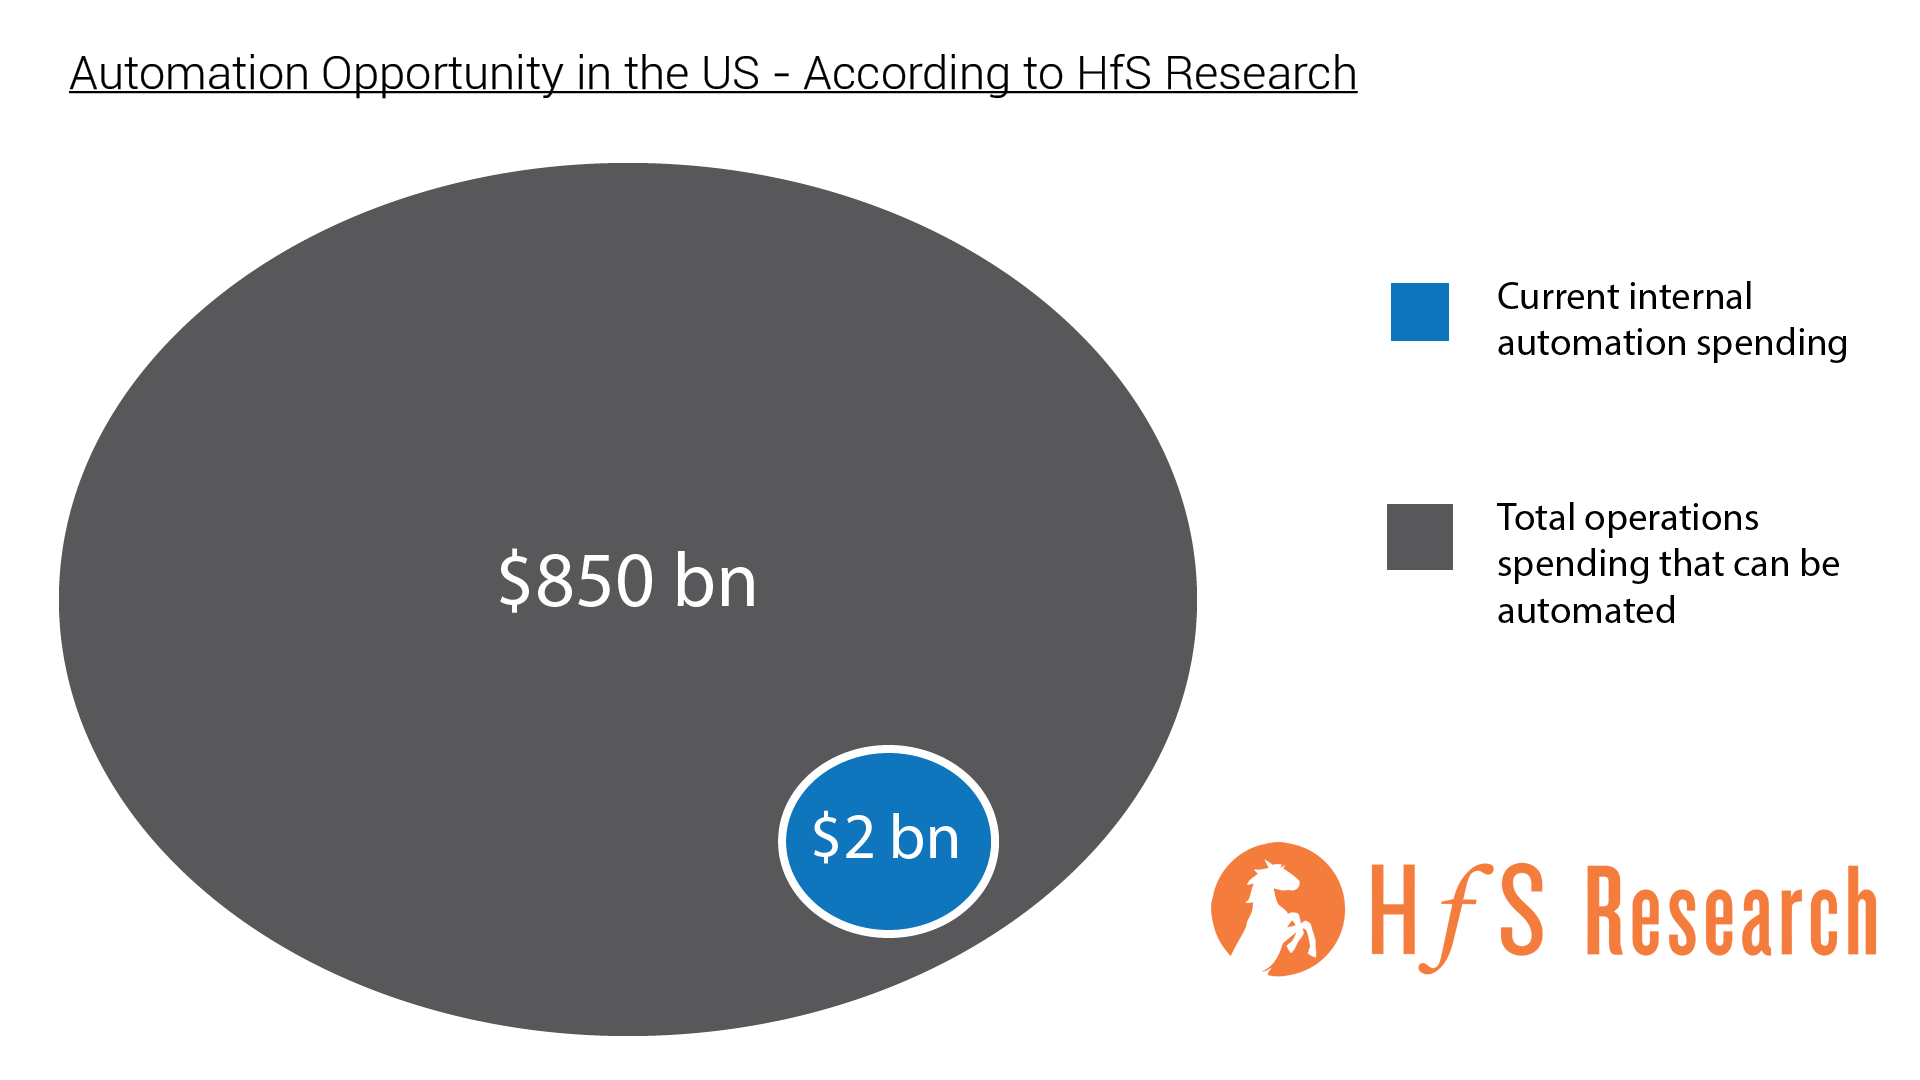 RPA Industry Report from HfS Research